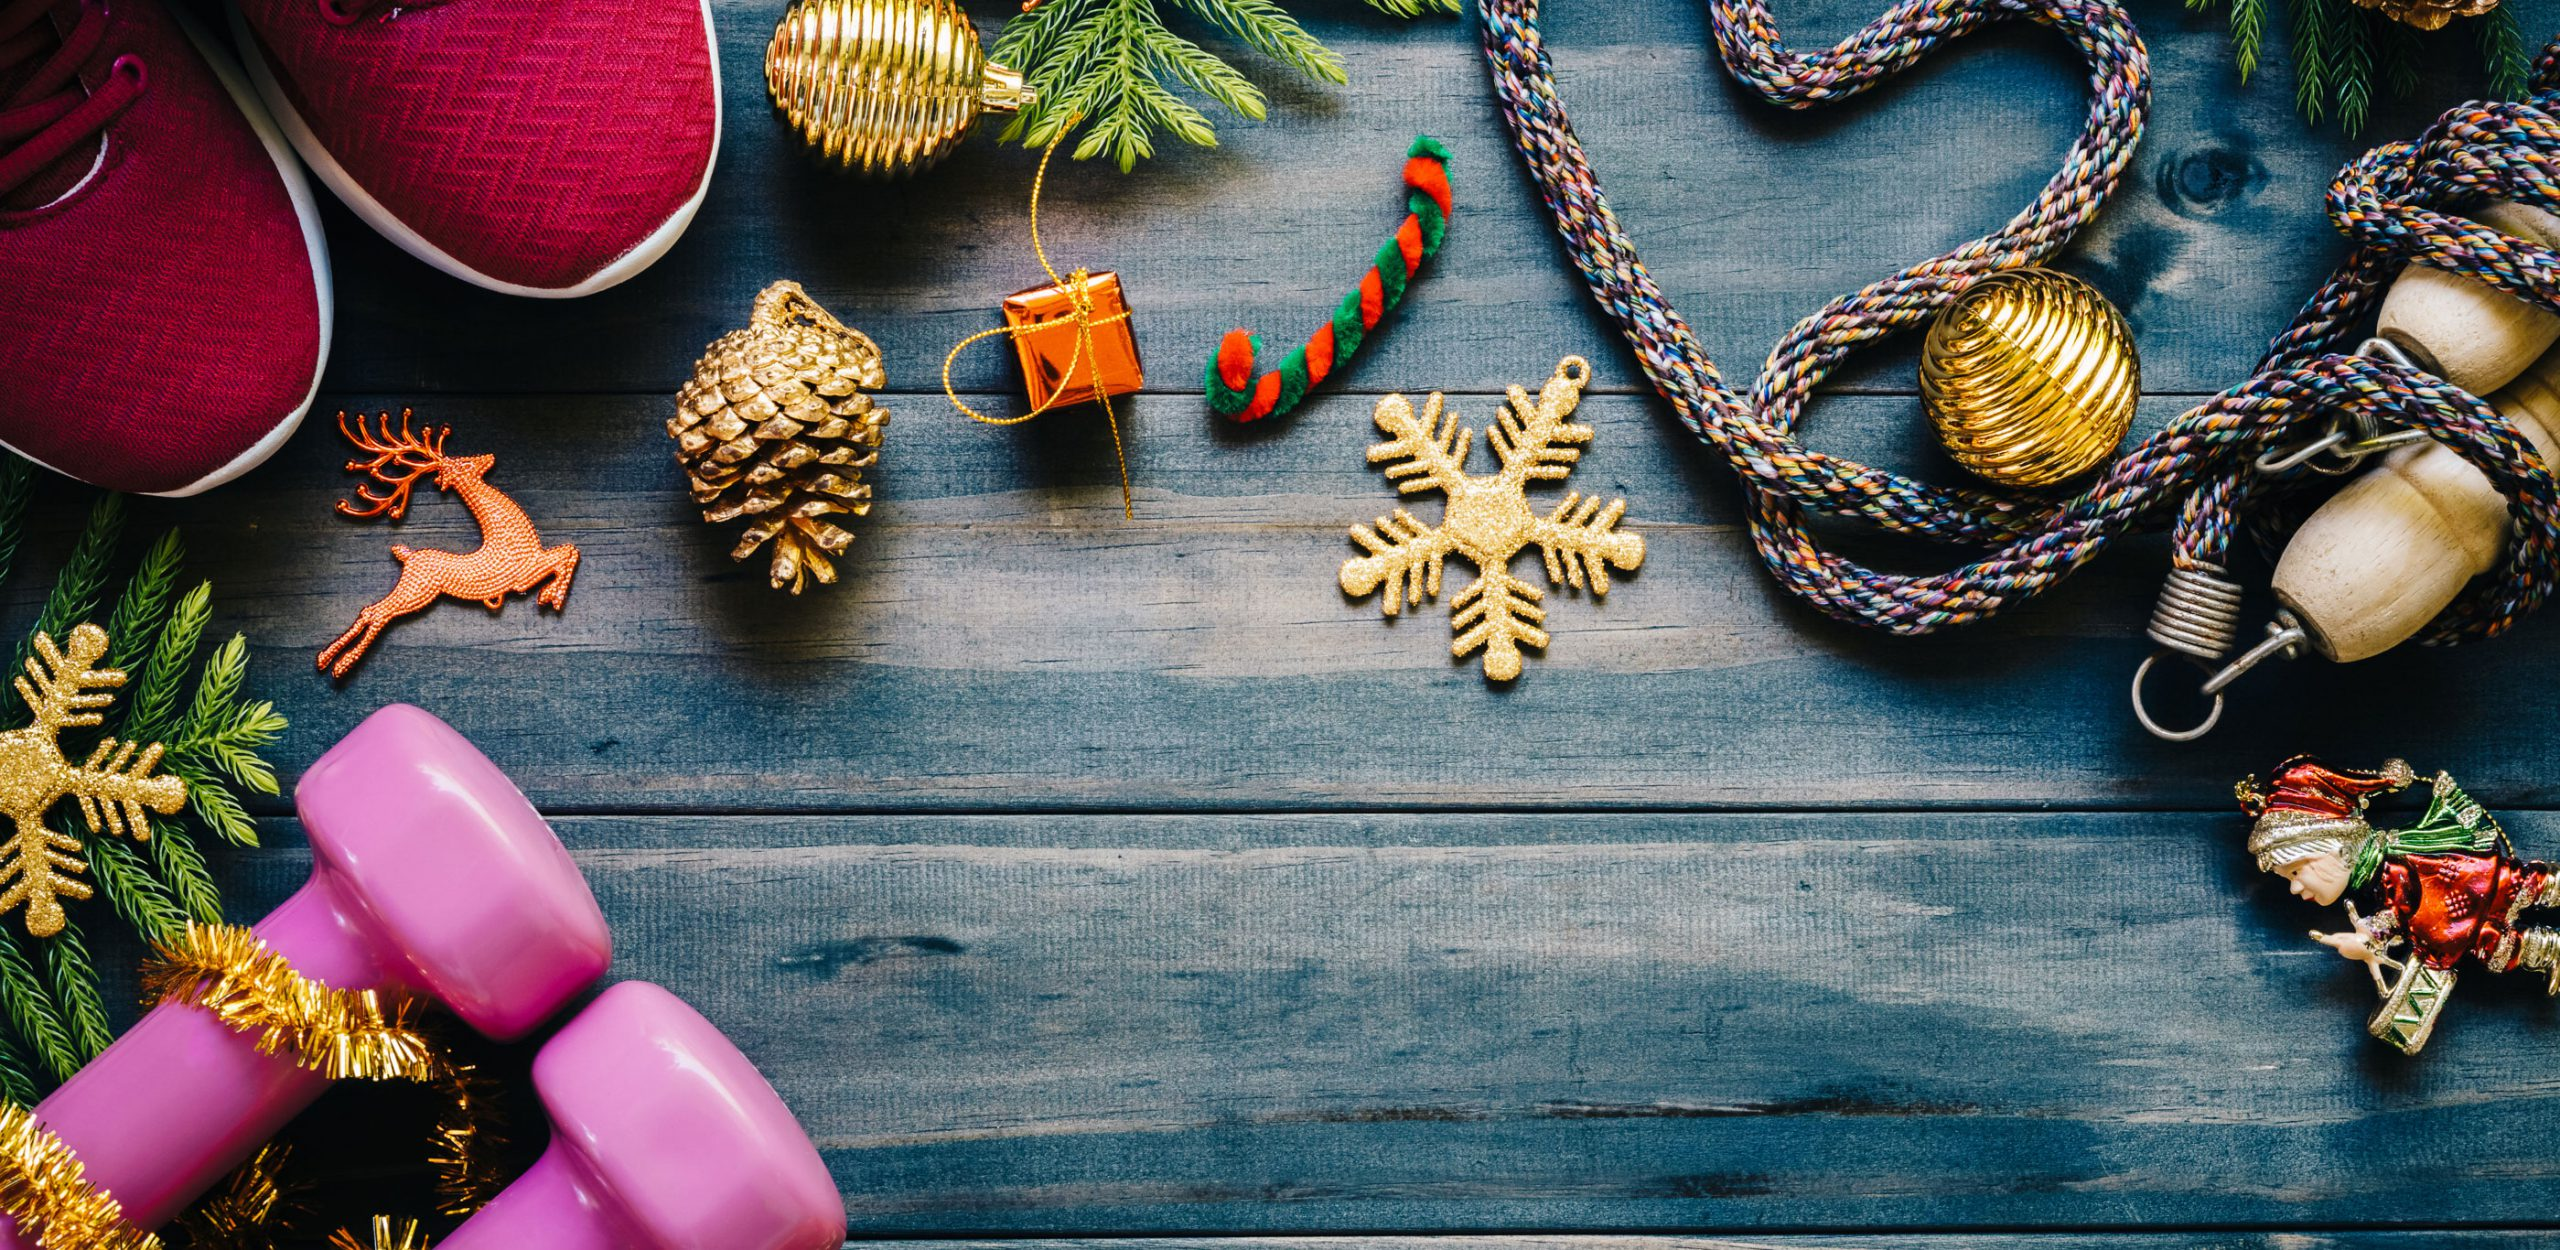 Healthy Gifts to Add to Your Holiday List - Whether You've Been Naughty or Nice, Don't Miss Out on These Healthy Living Wins.